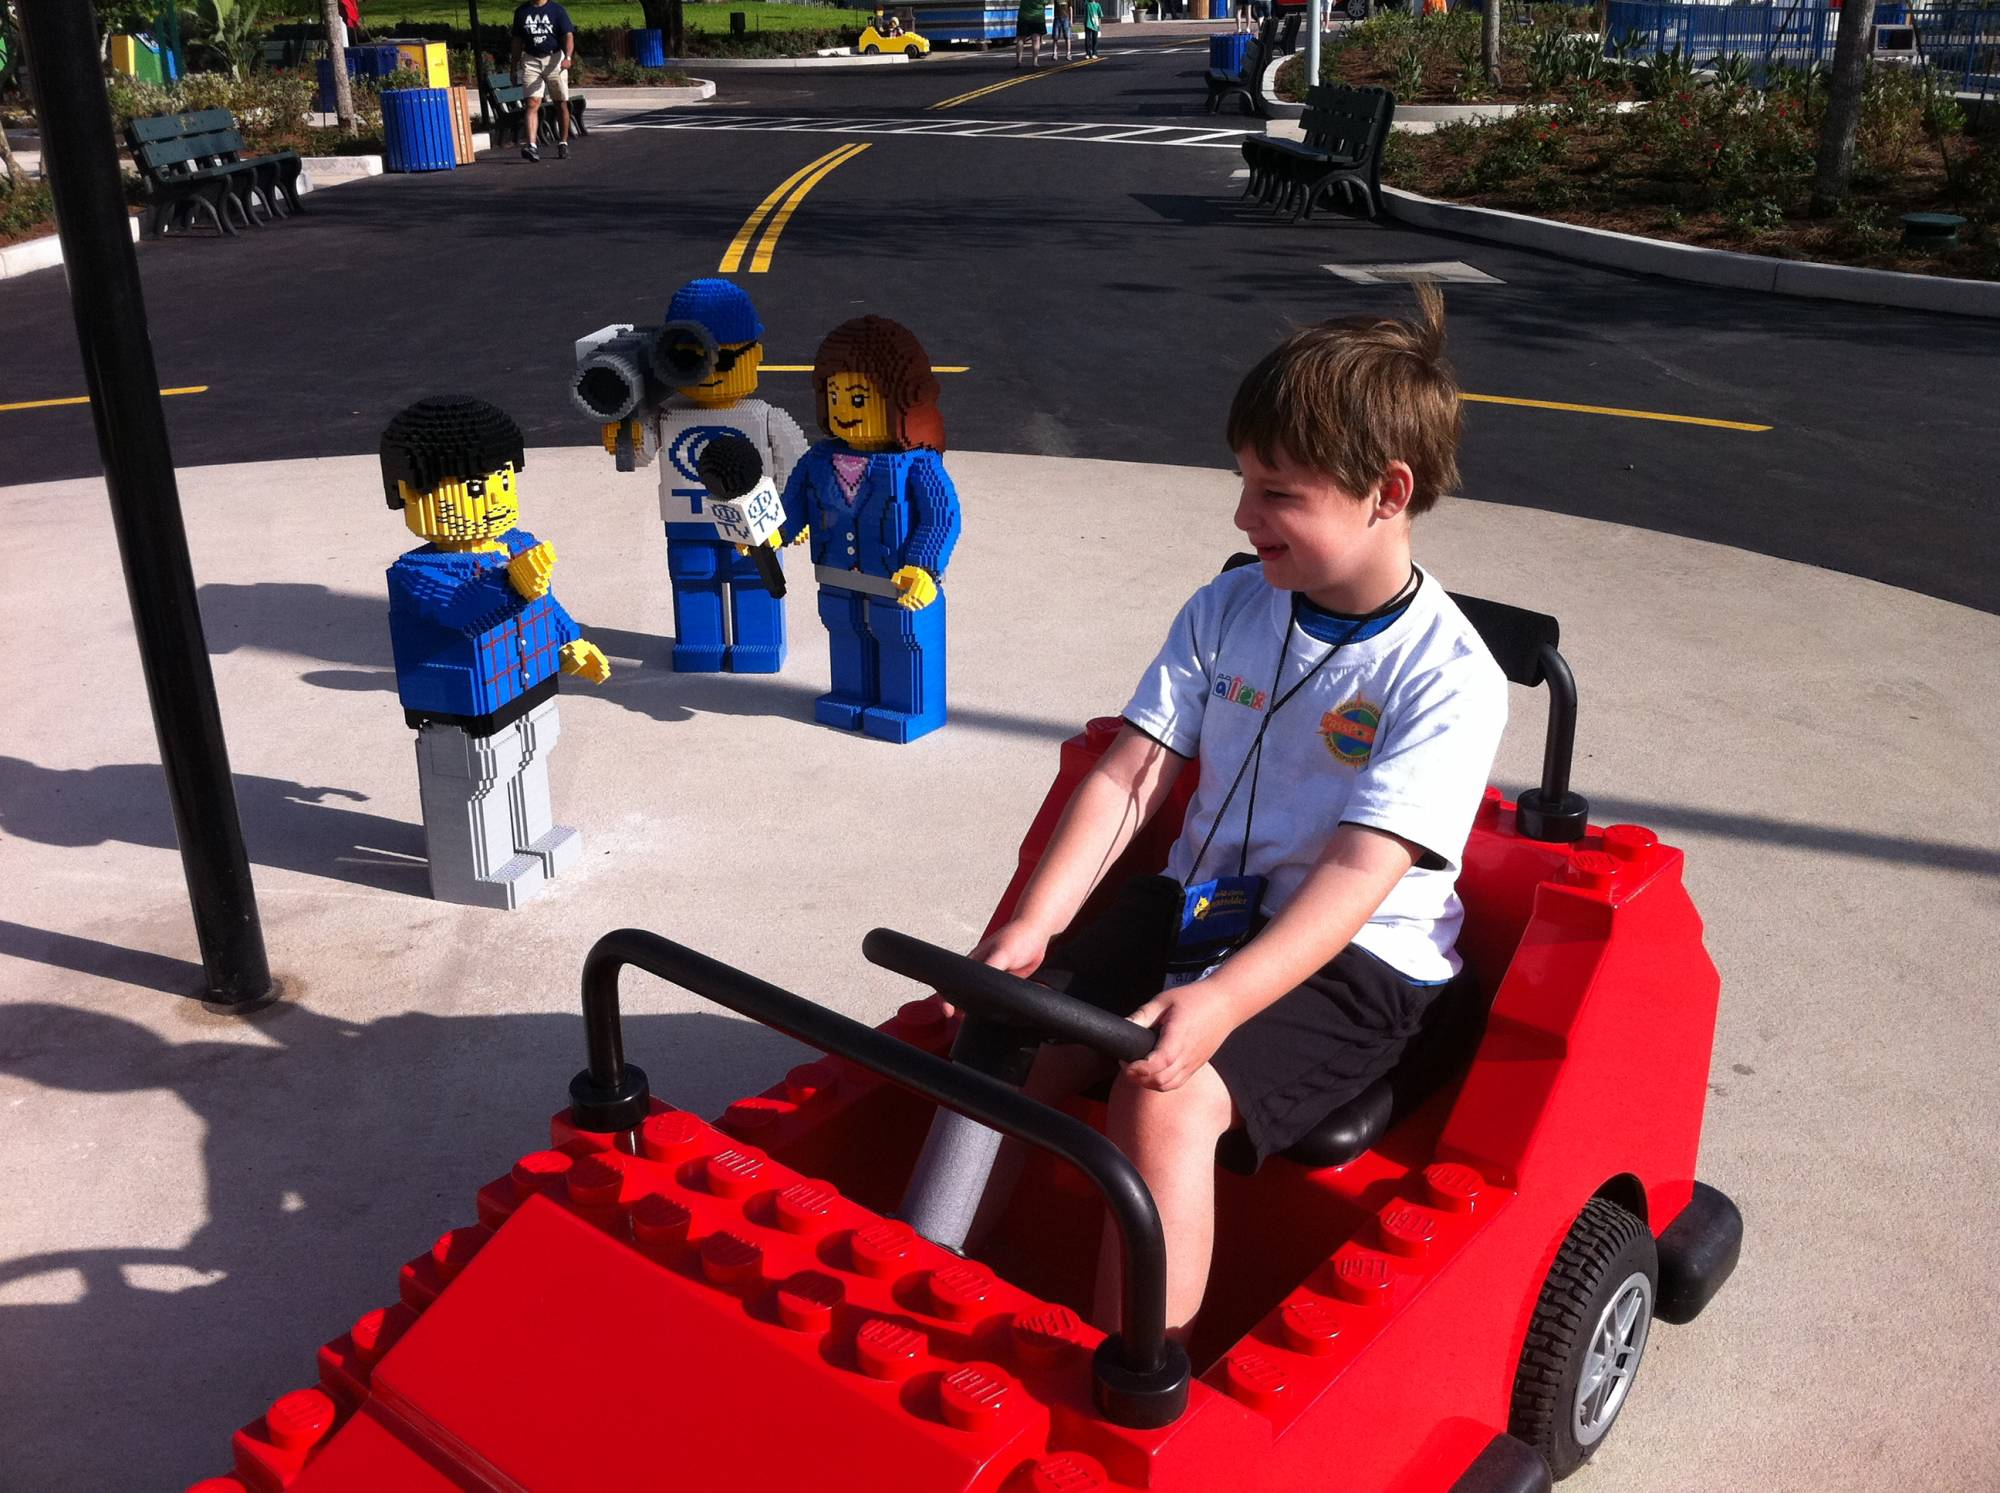 LEGO Car at LEGOLAND Florida